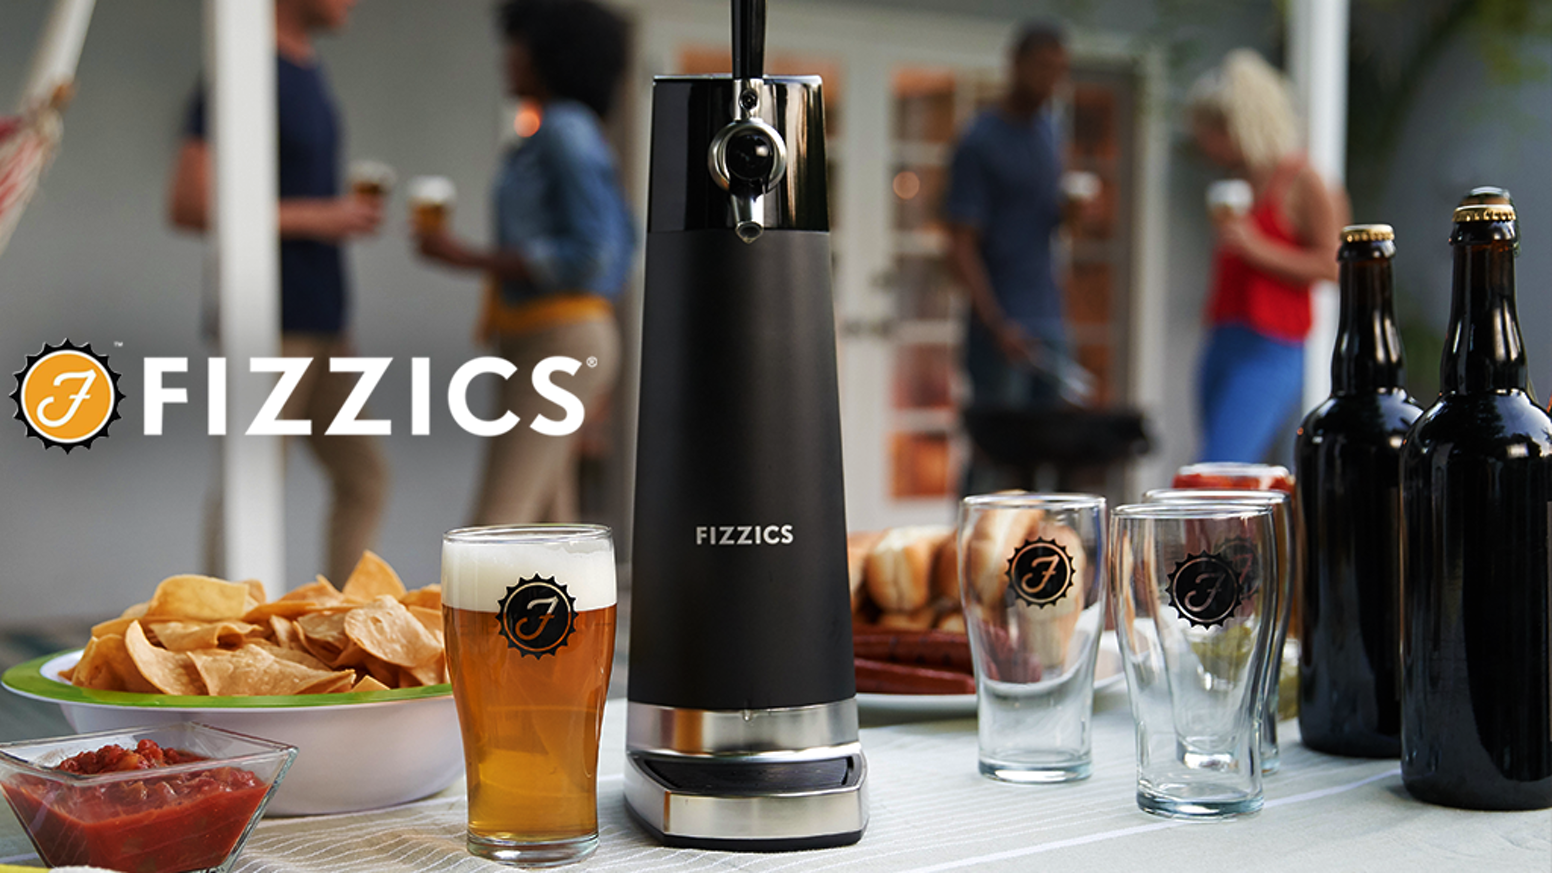 Fizzics DraftPour converts your favorite beer into a smooth and creamy nitro-style pour that blows draft away.